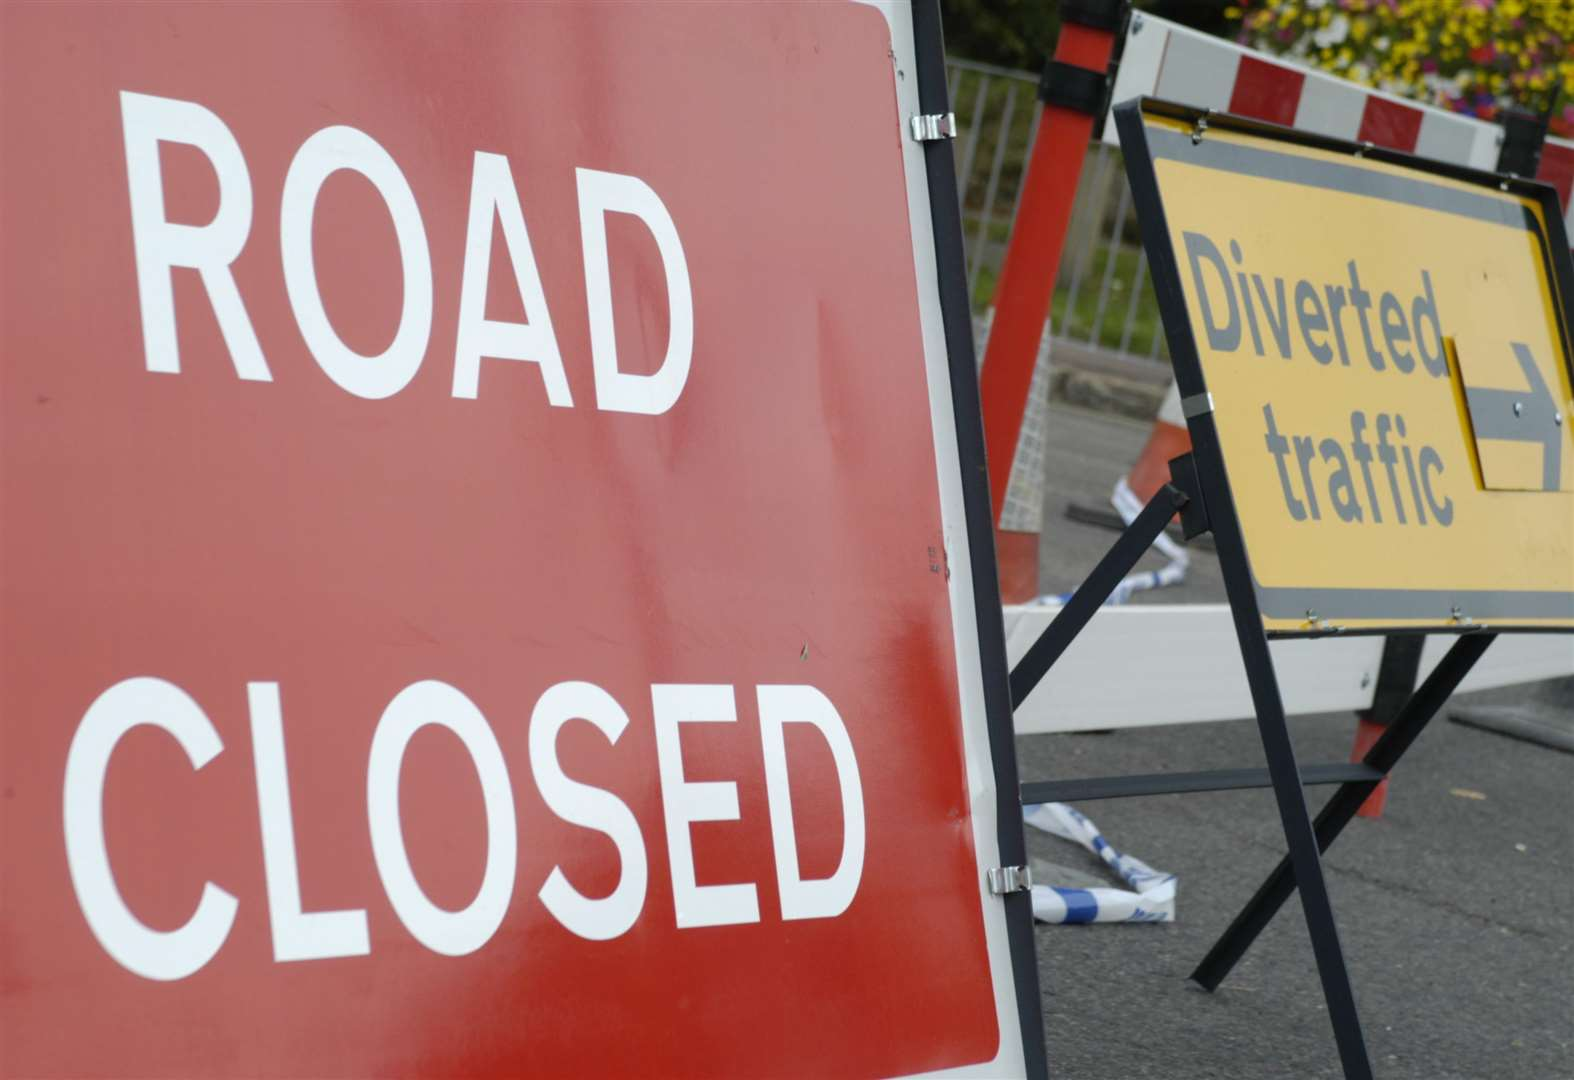 Sudbury road closure in effect for safety reasons